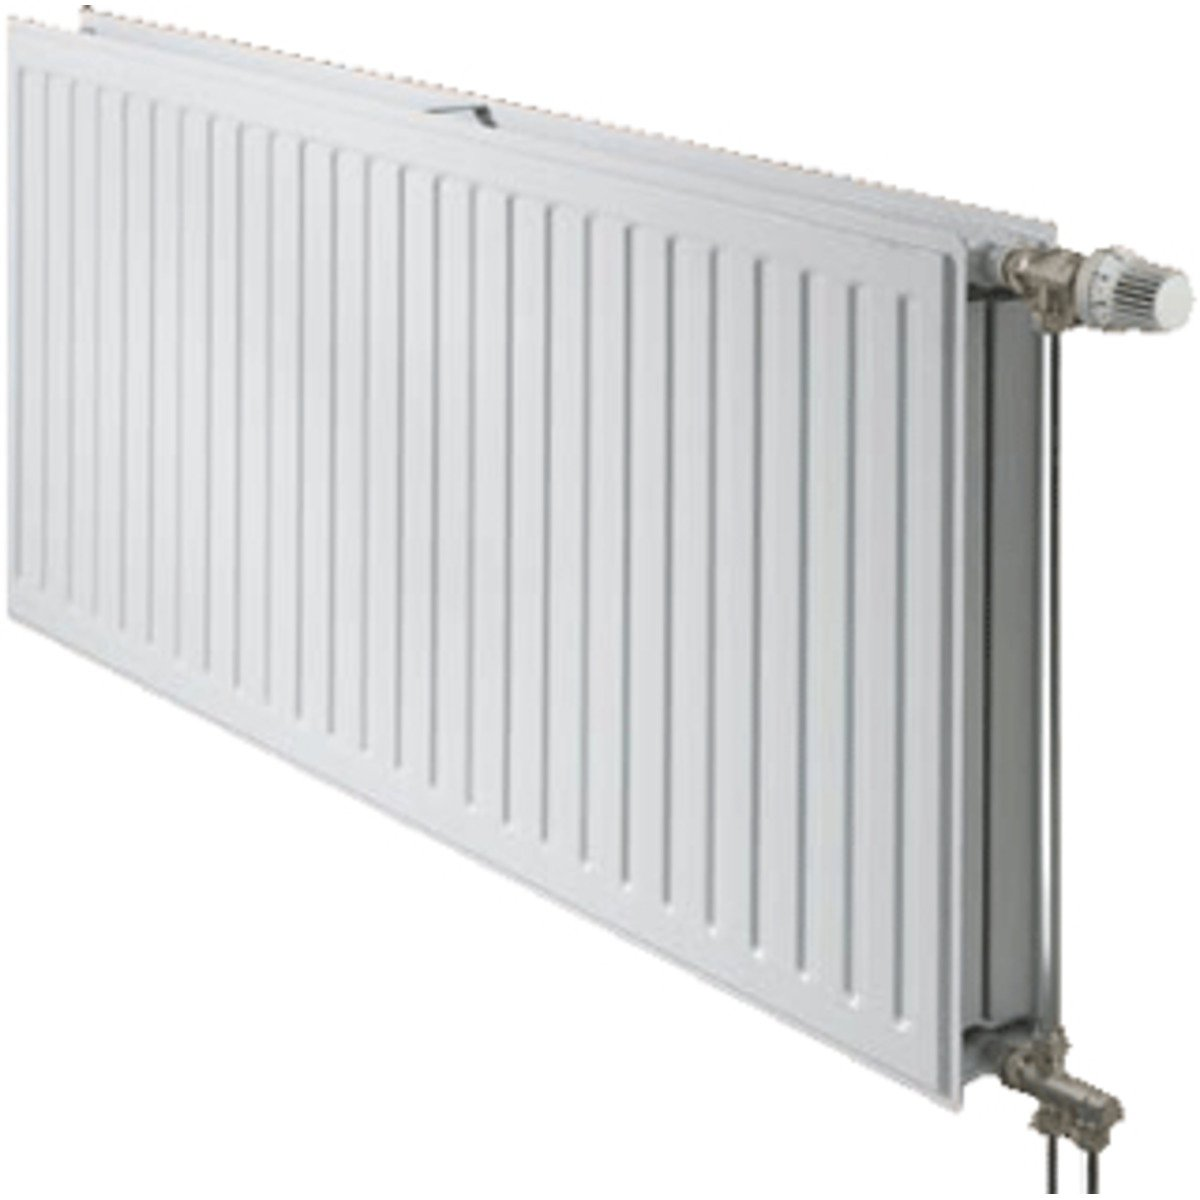 Radson Cld Radiator.Radson Cld Radiator Paneel H30xd6 9xl195cm 1601w Staal Wit